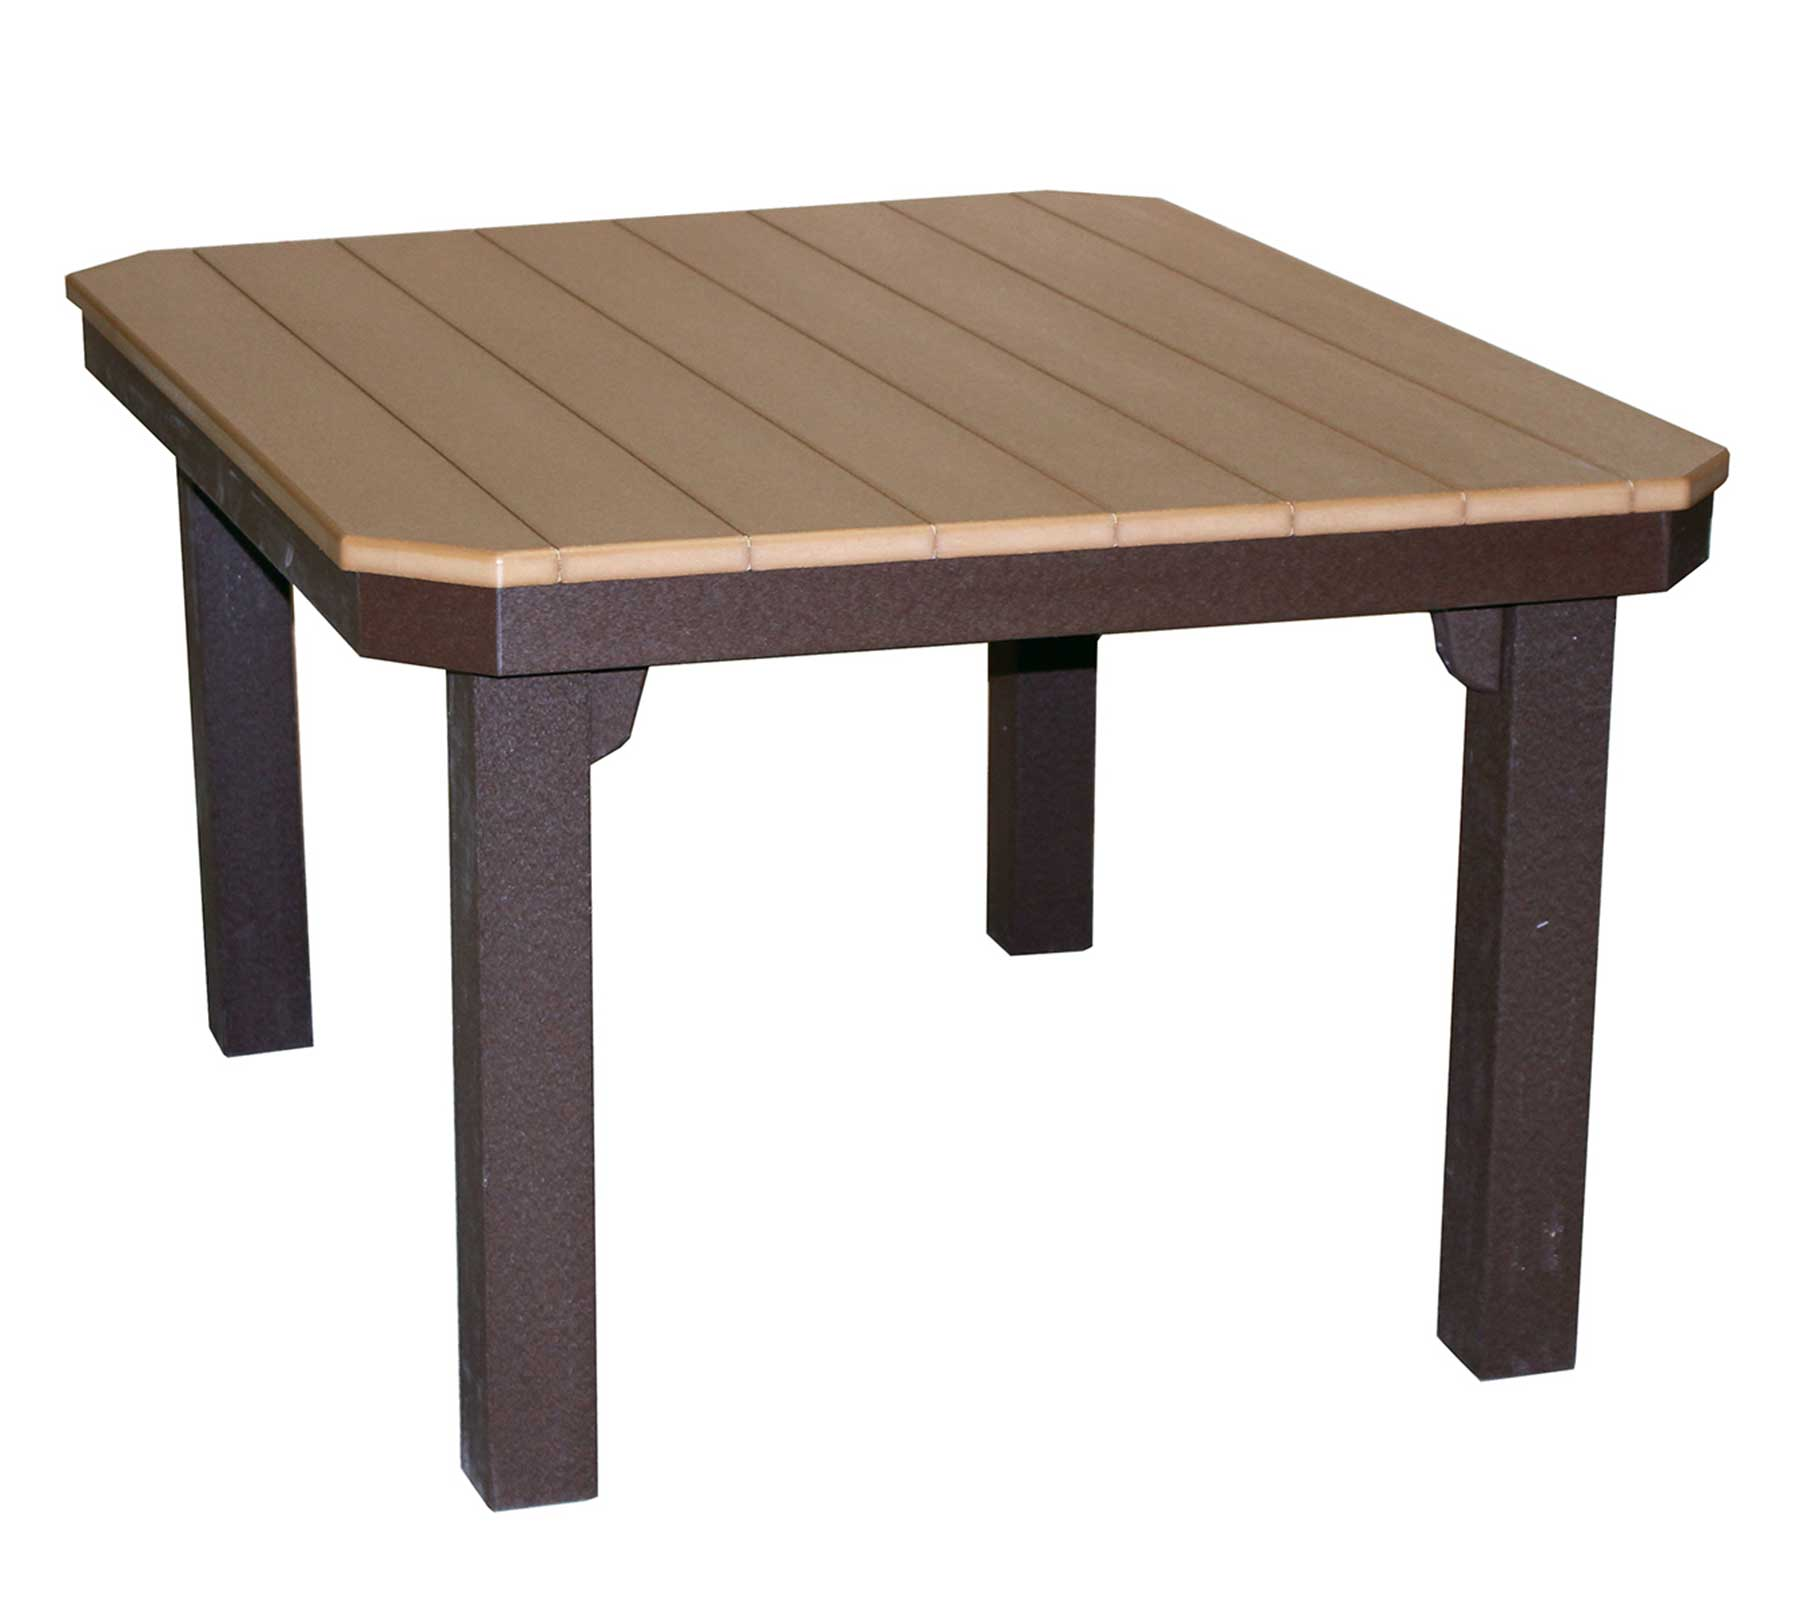 The Rectangle Leg Table From Signature Fine Furnishings